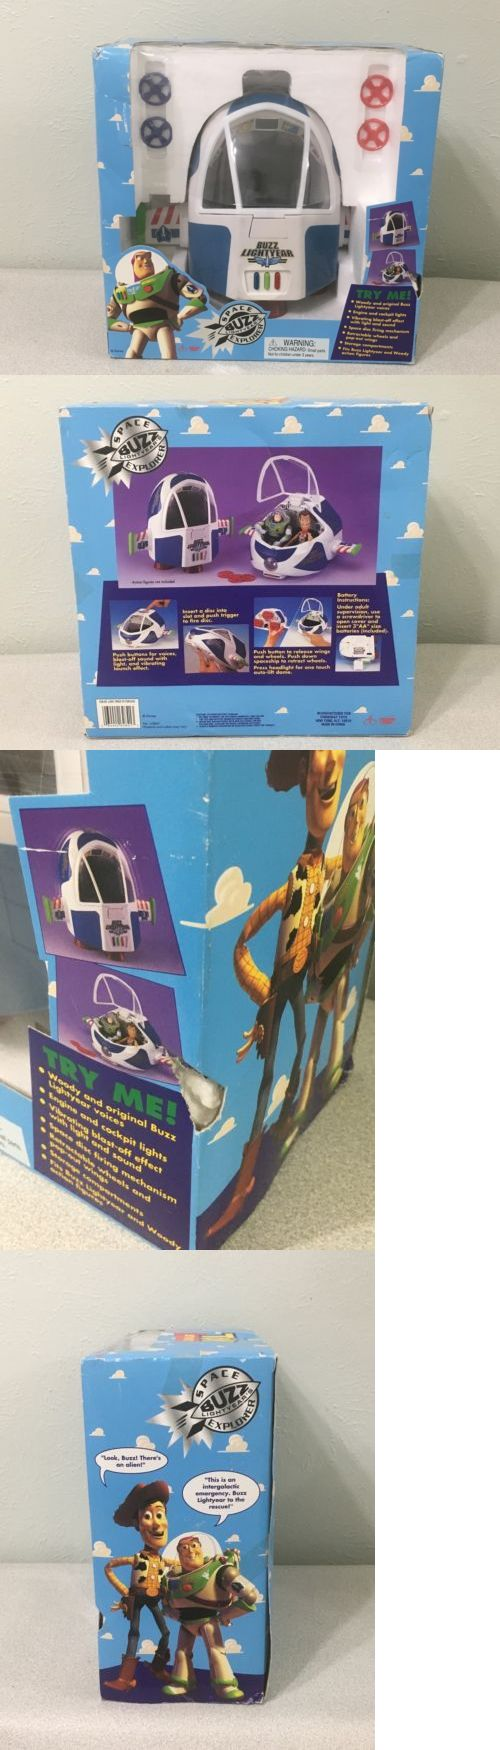 Toy story of terror 1 2 3 buzz lightyear of star command for sale - Toy Story 19223 Disney S Toy Story Buzz Lightyear Space Explorer Buy It